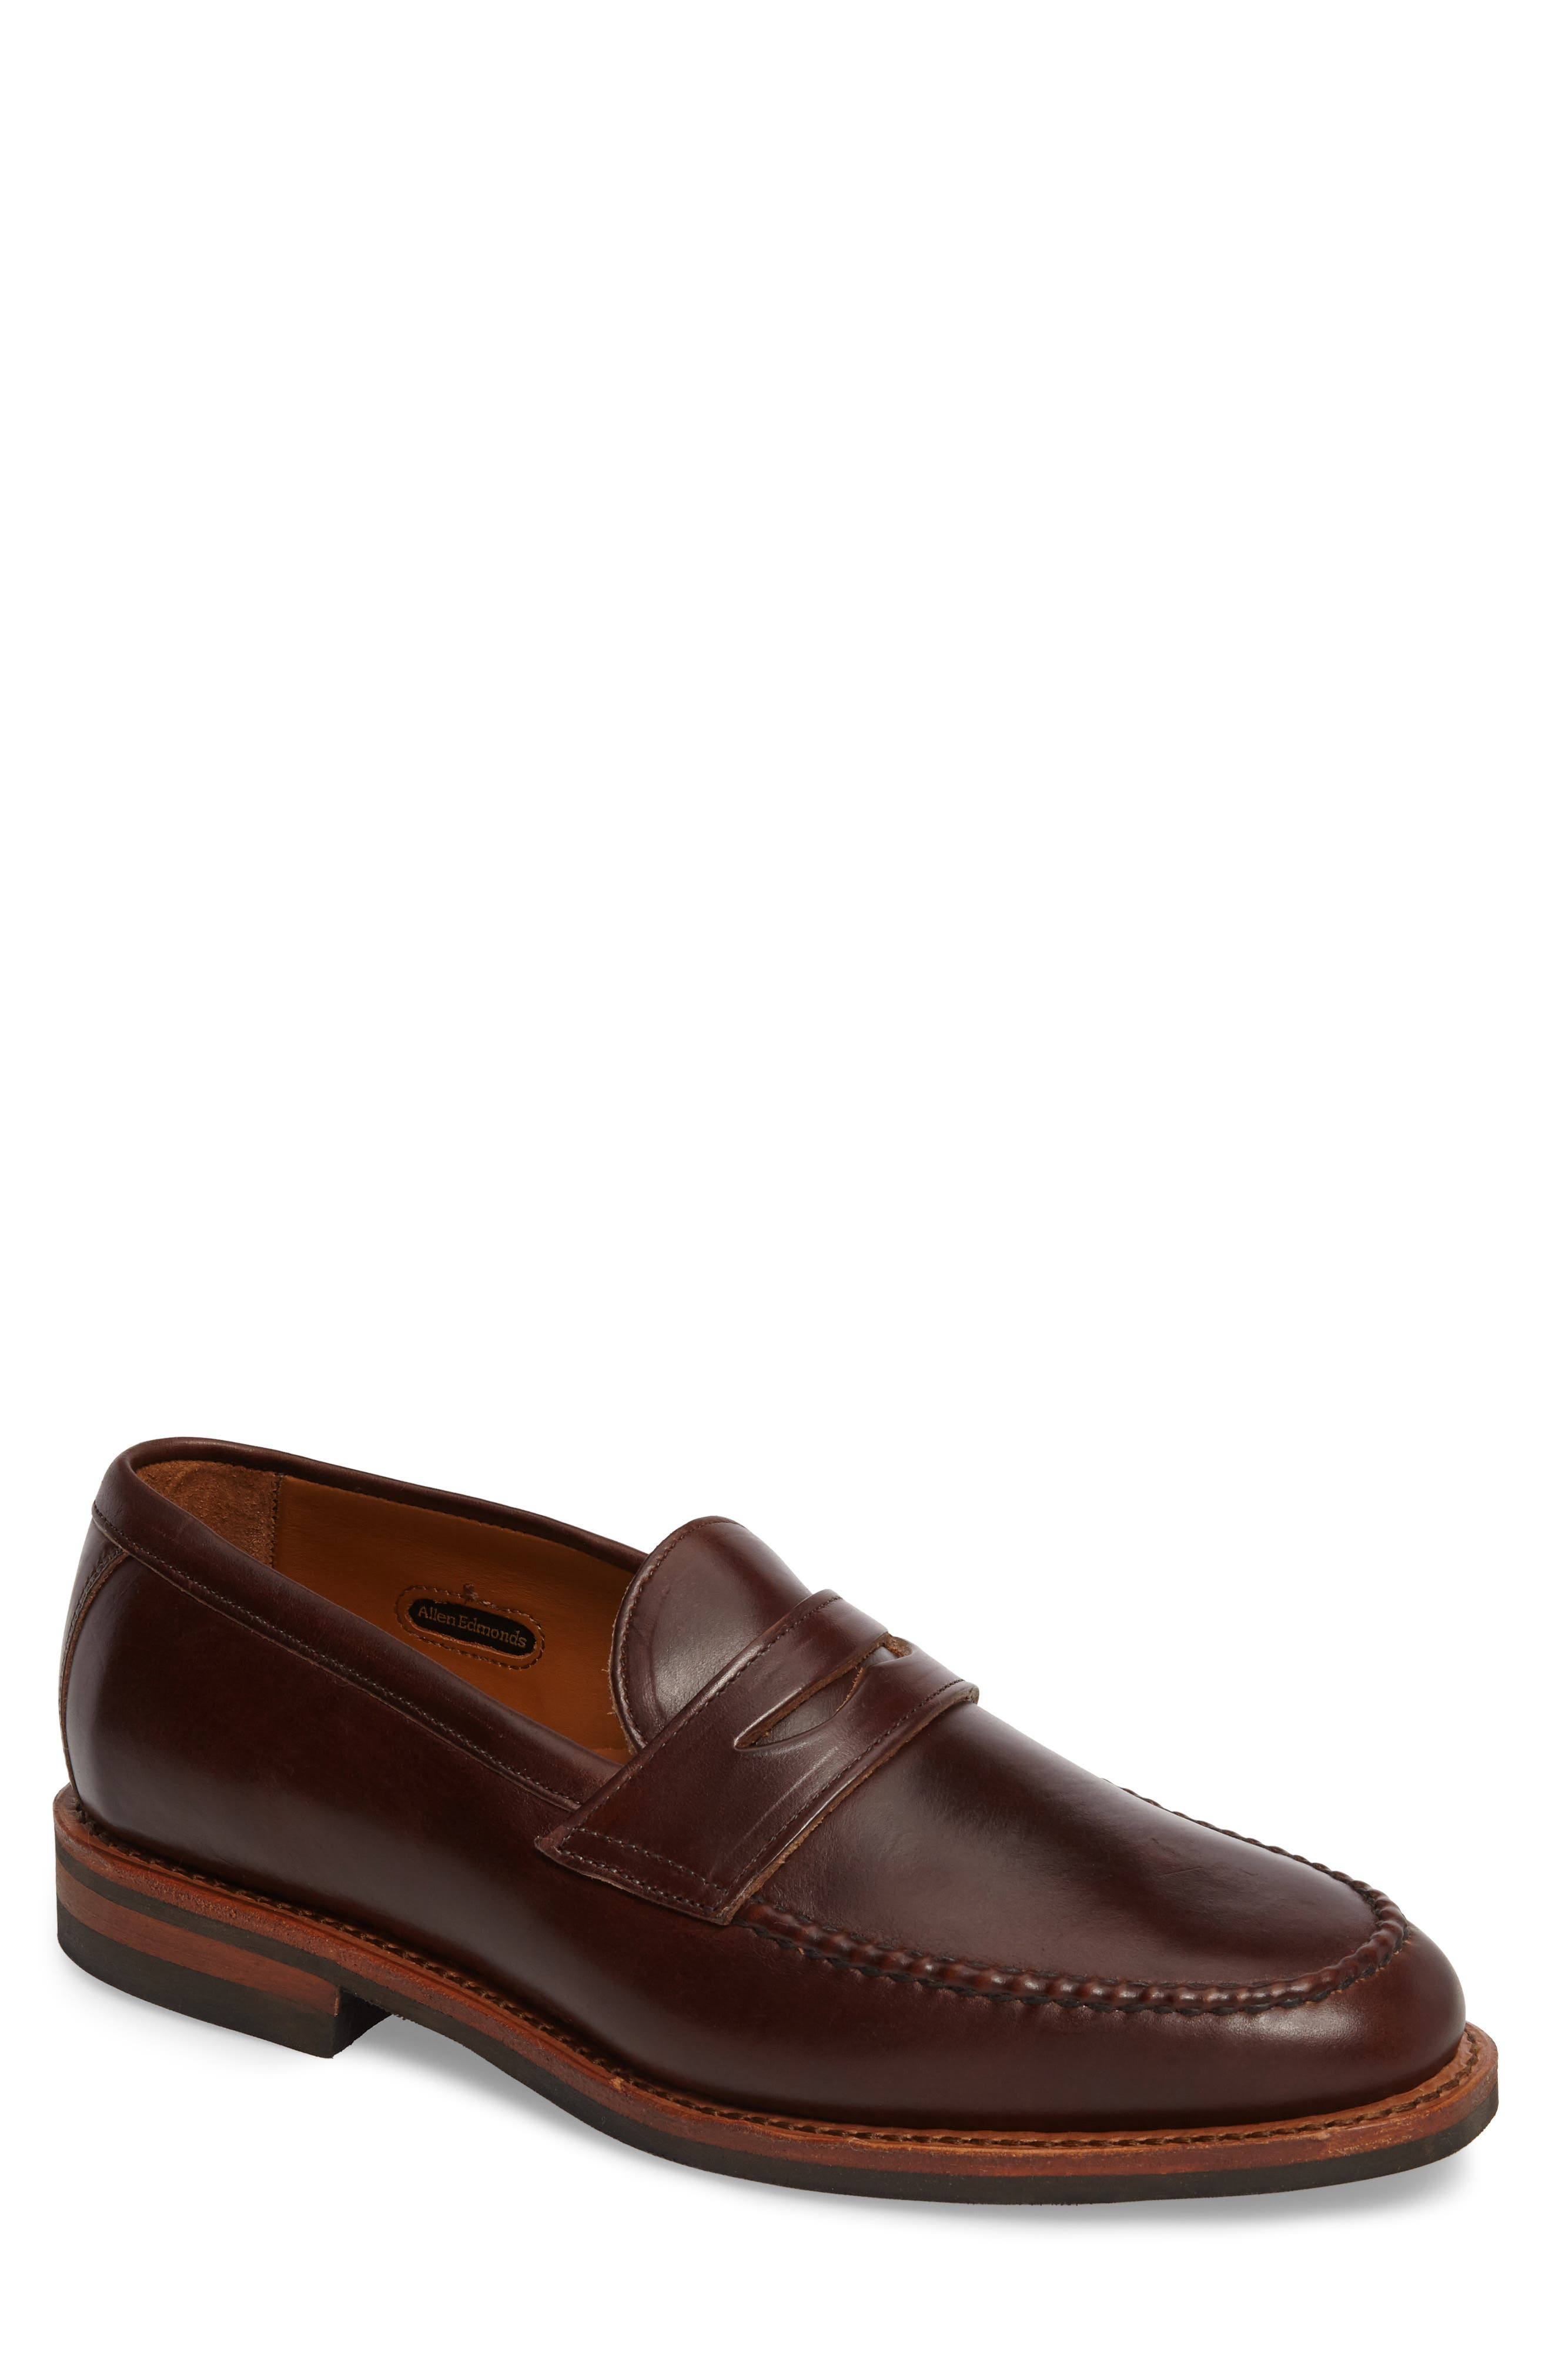 Addison Penny Loafer,                             Main thumbnail 1, color,                             BROWN LEATHER